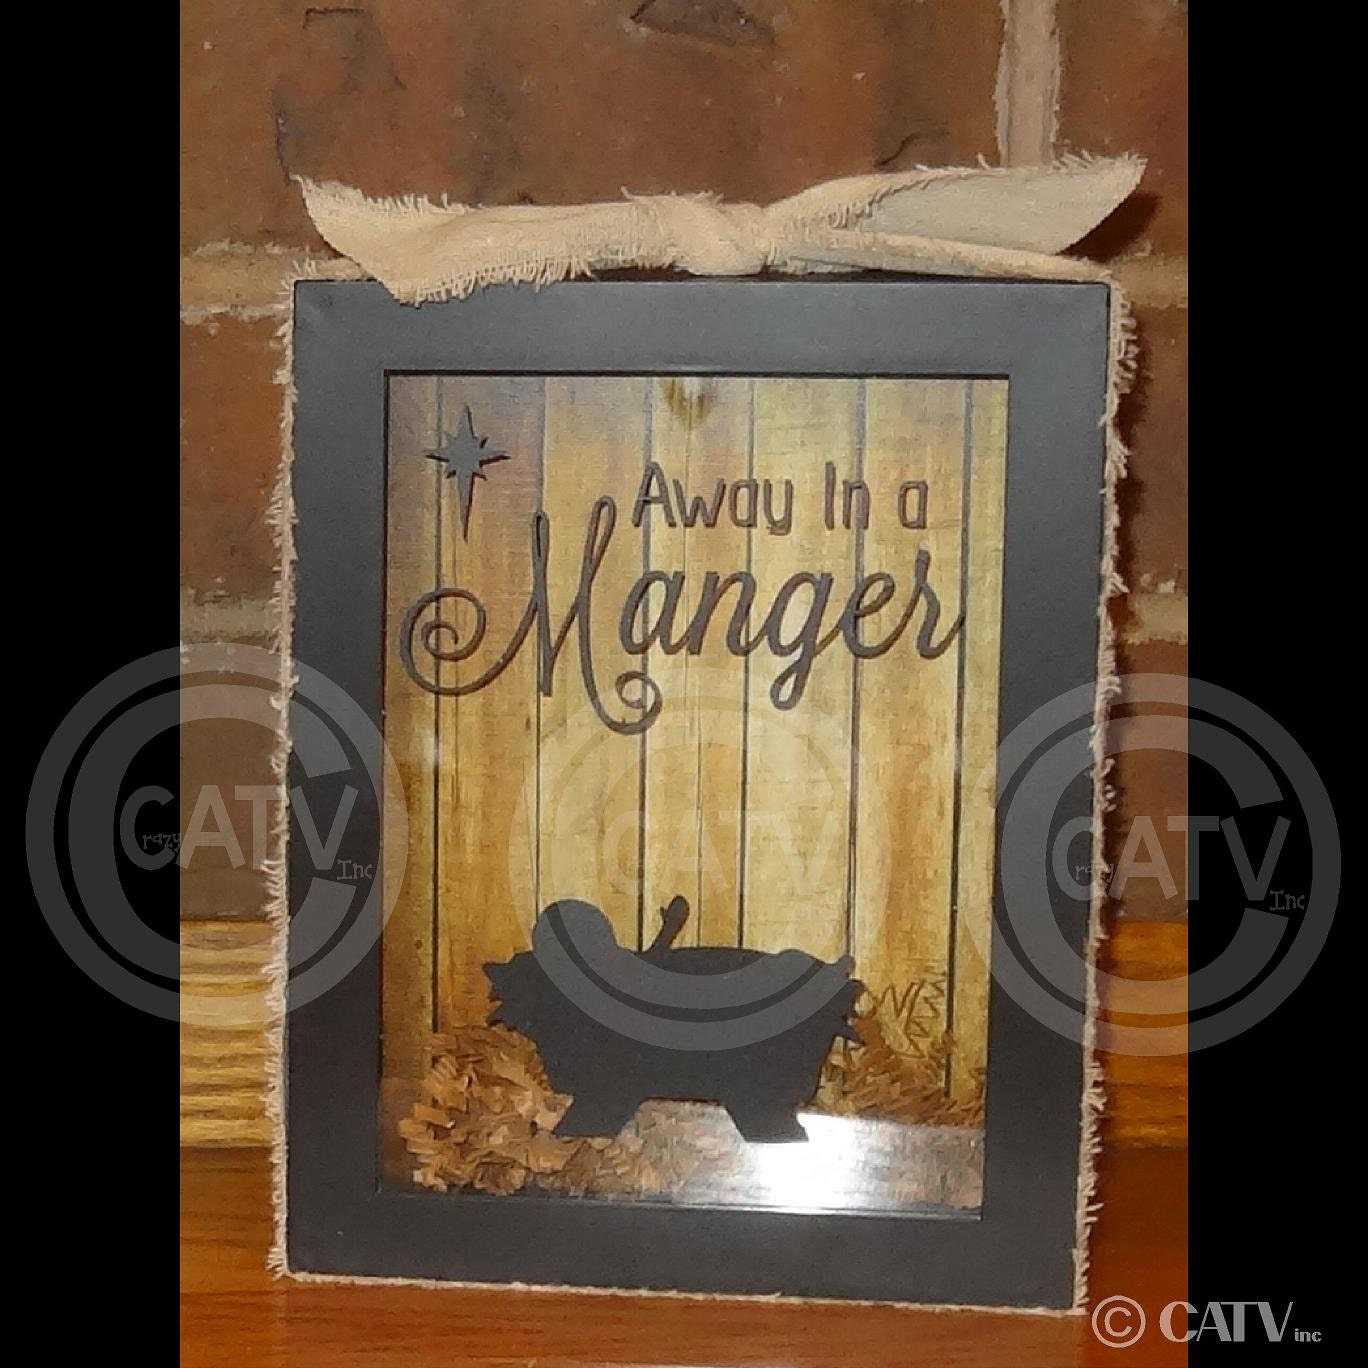 Set Of 2 Diy Christmas Nativity Away In A Manger With Wood Backdrop For 5x7 Shadow Box Craft Project Holiday Vinyl Frame Not Included